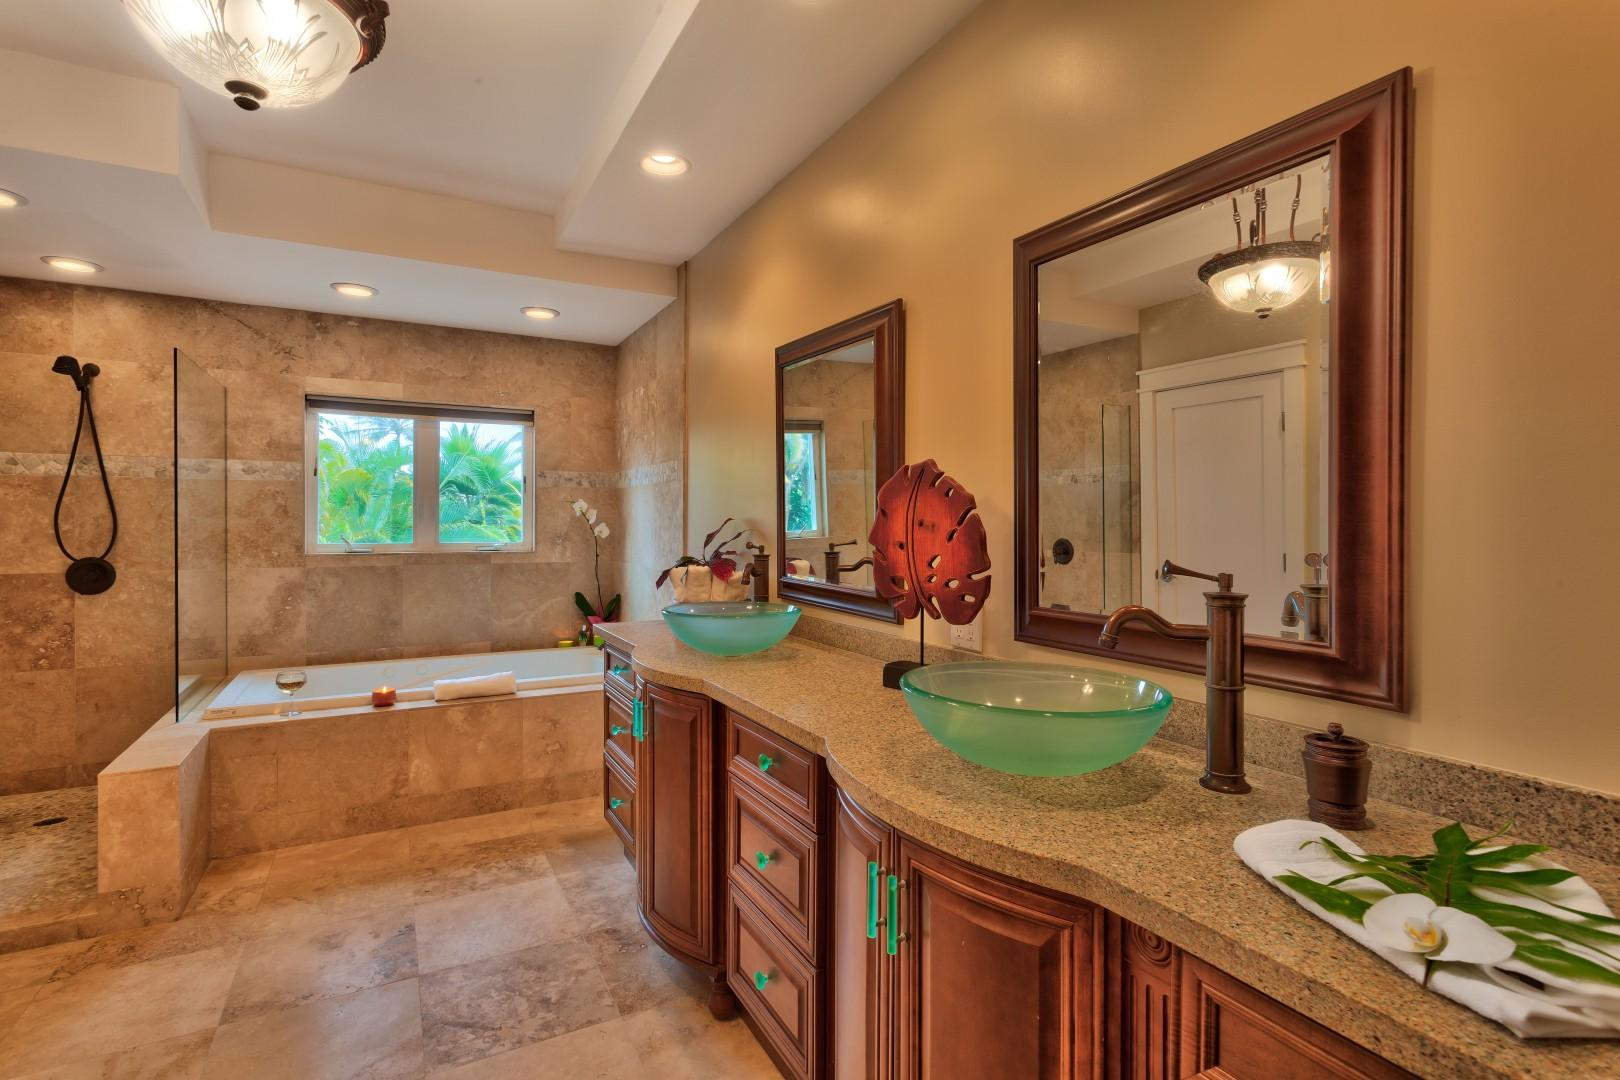 Bask in the spa-like feel of your custom master bathroom